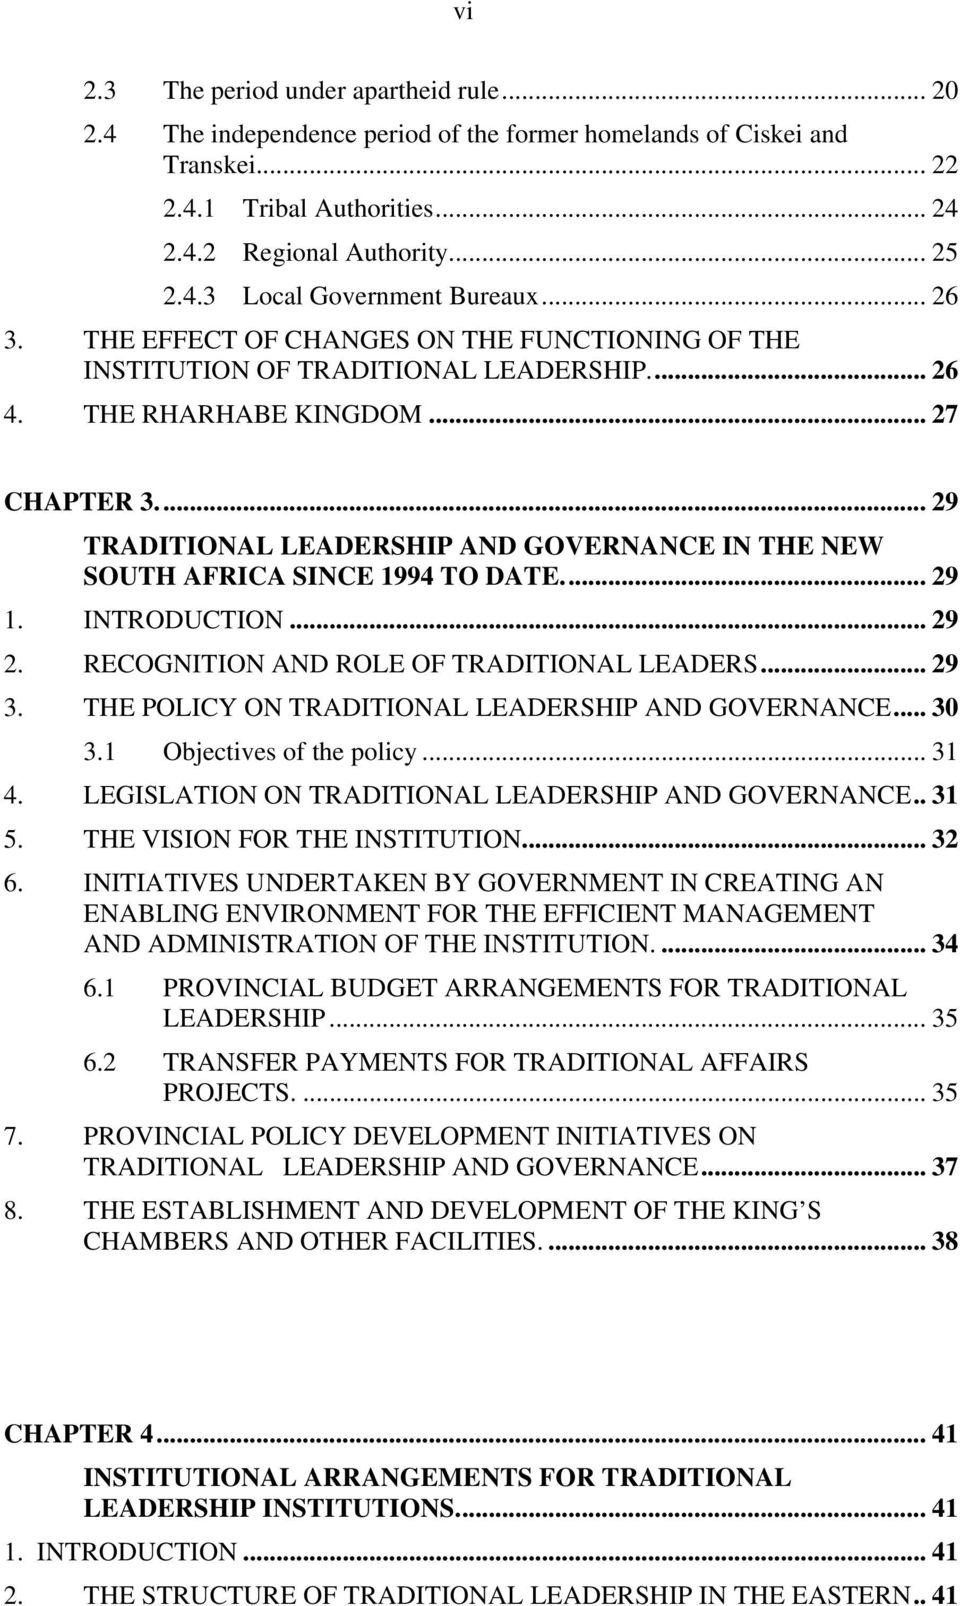 .. 29 TRADITIONAL LEADERSHIP AND GOVERNANCE IN THE NEW SOUTH AFRICA SINCE 1994 TO DATE... 29 1. INTRODUCTION... 29 2. RECOGNITION AND ROLE OF TRADITIONAL LEADERS... 29 3.